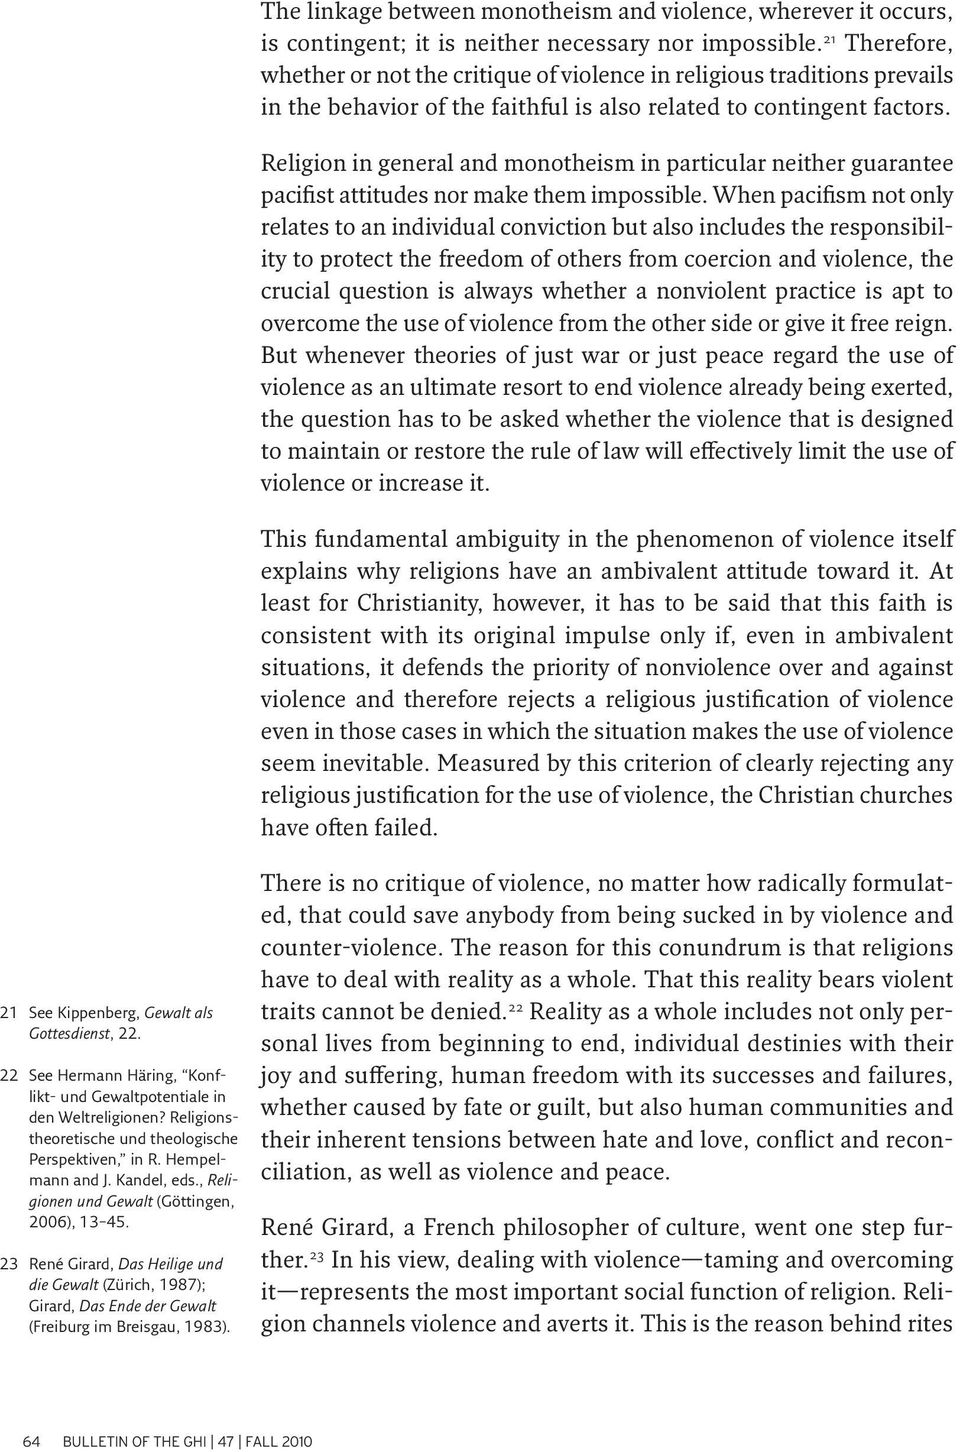 Religion in general and monotheism in particular neither guarantee pacifist attitudes nor make them impossible.